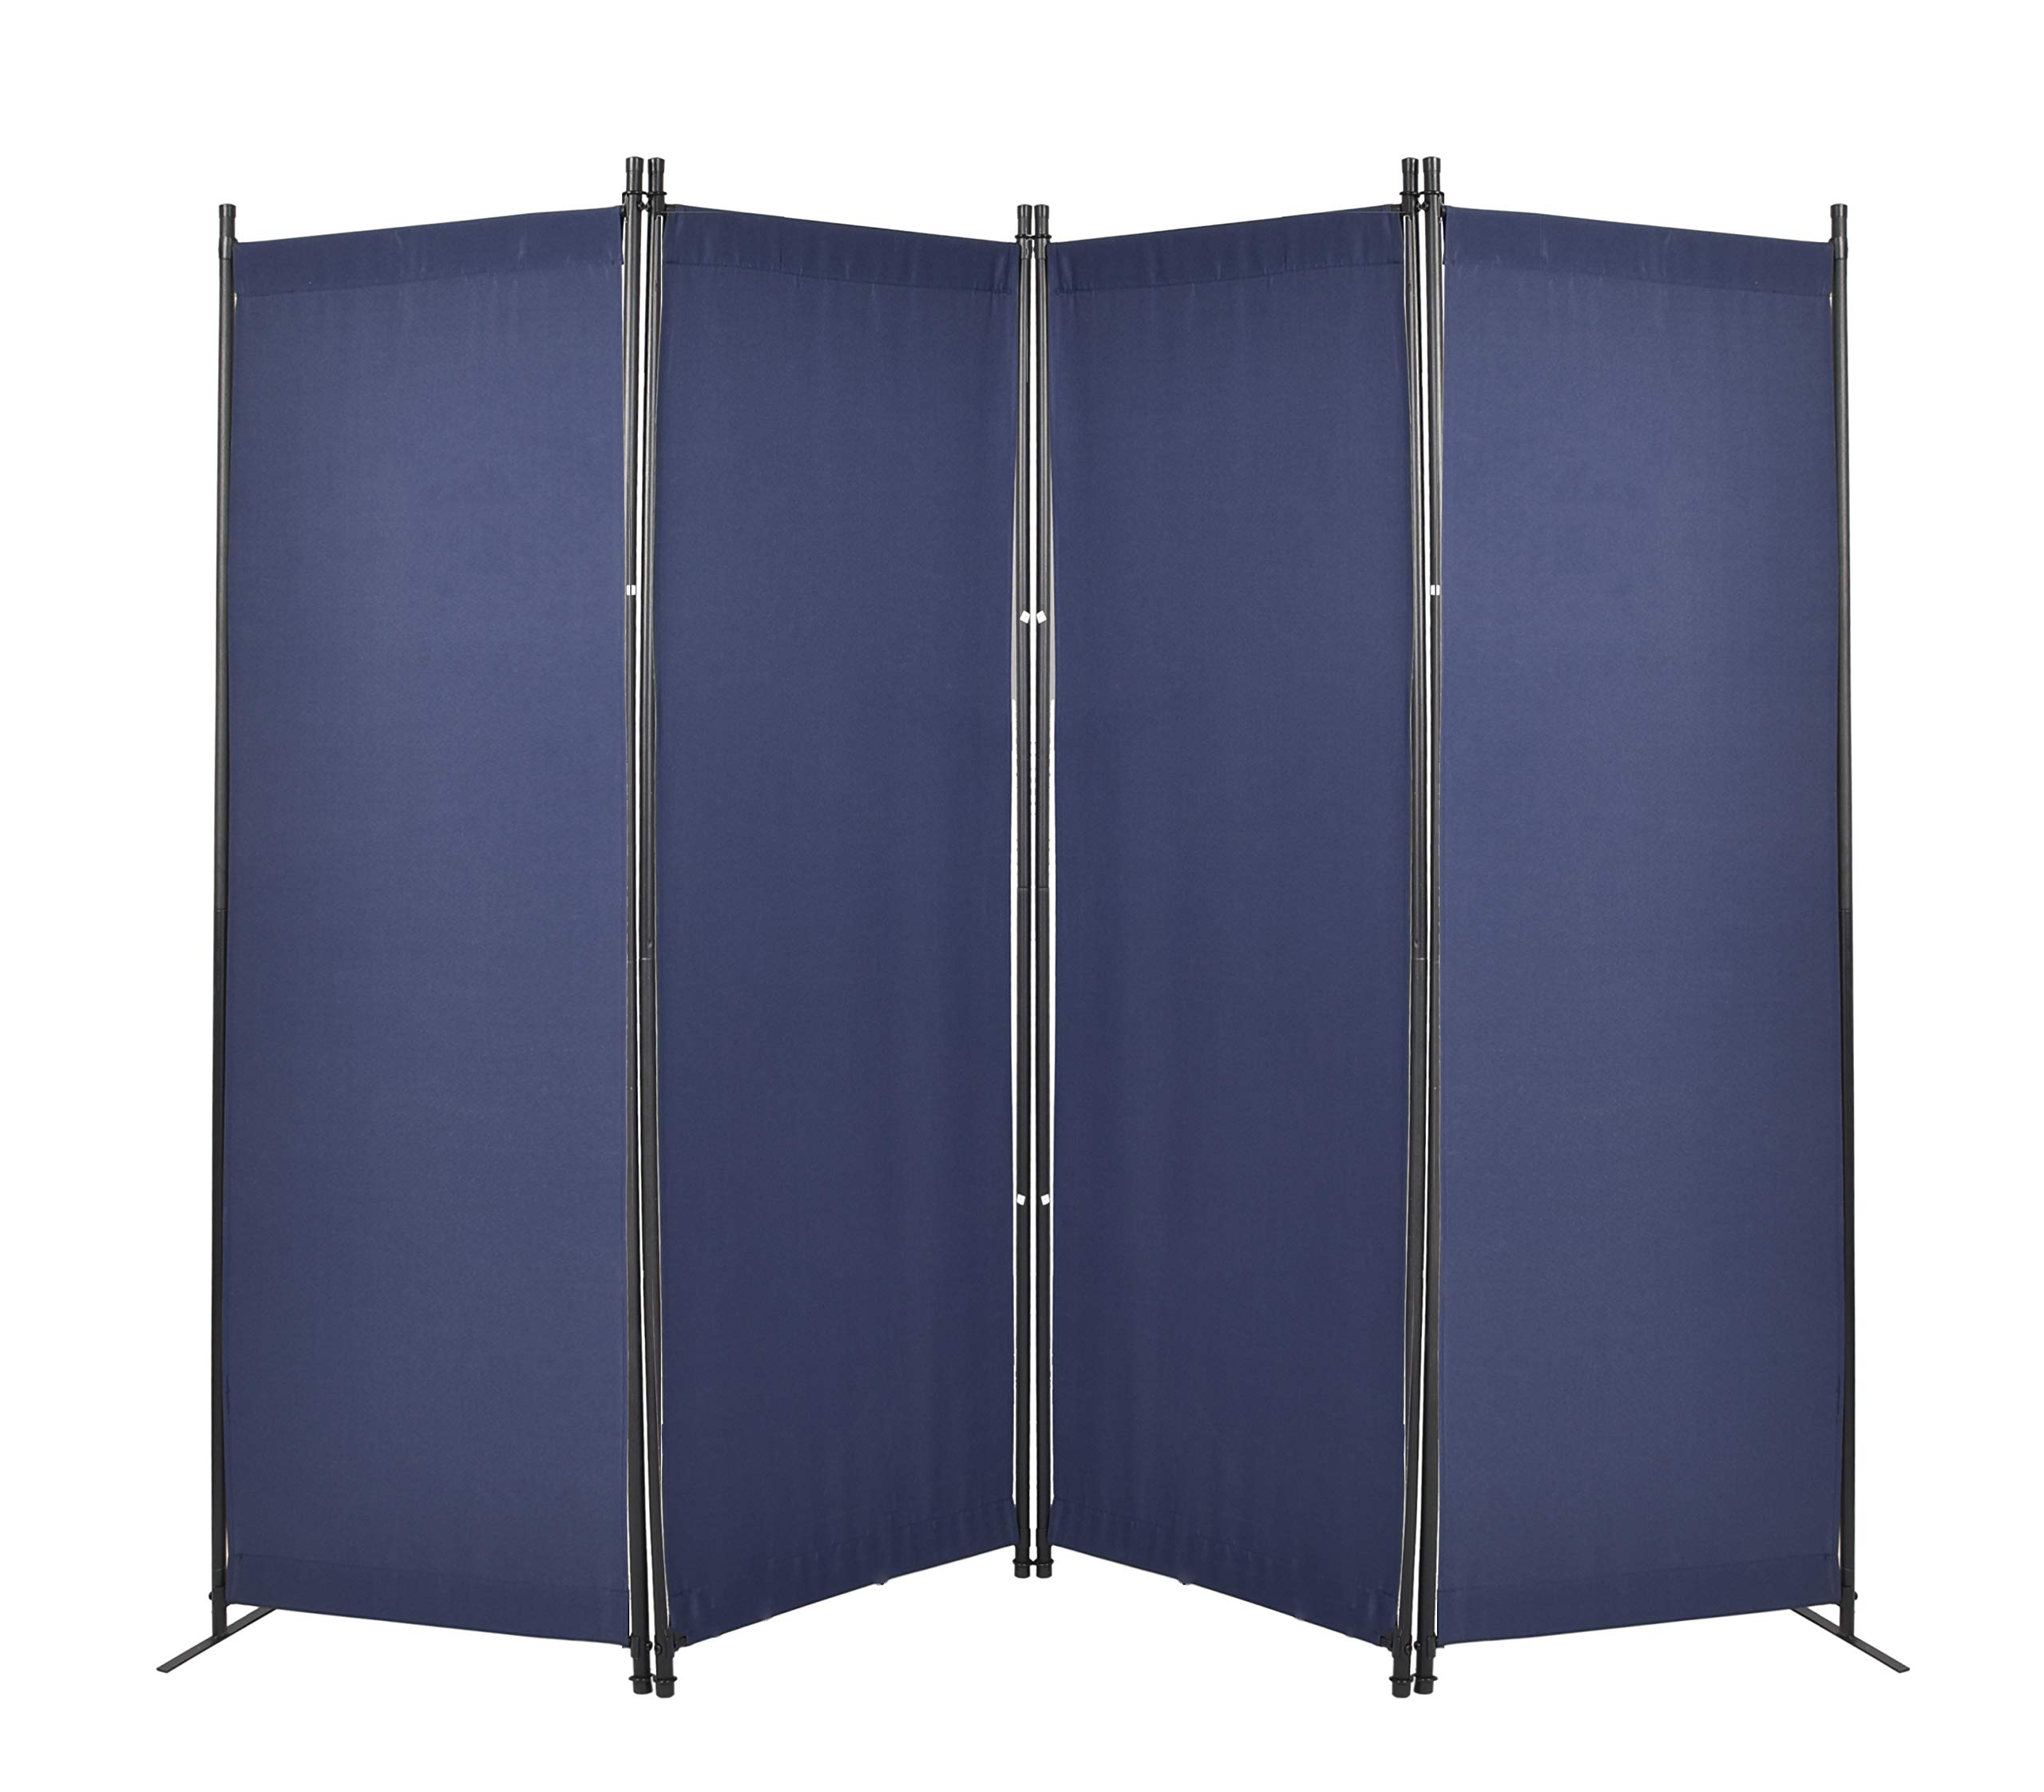 GOJOOASIS 4 Panel Room Divider Folding Privacy Screen Home Office Dorm Decor (Blue) by GOJOOASIS